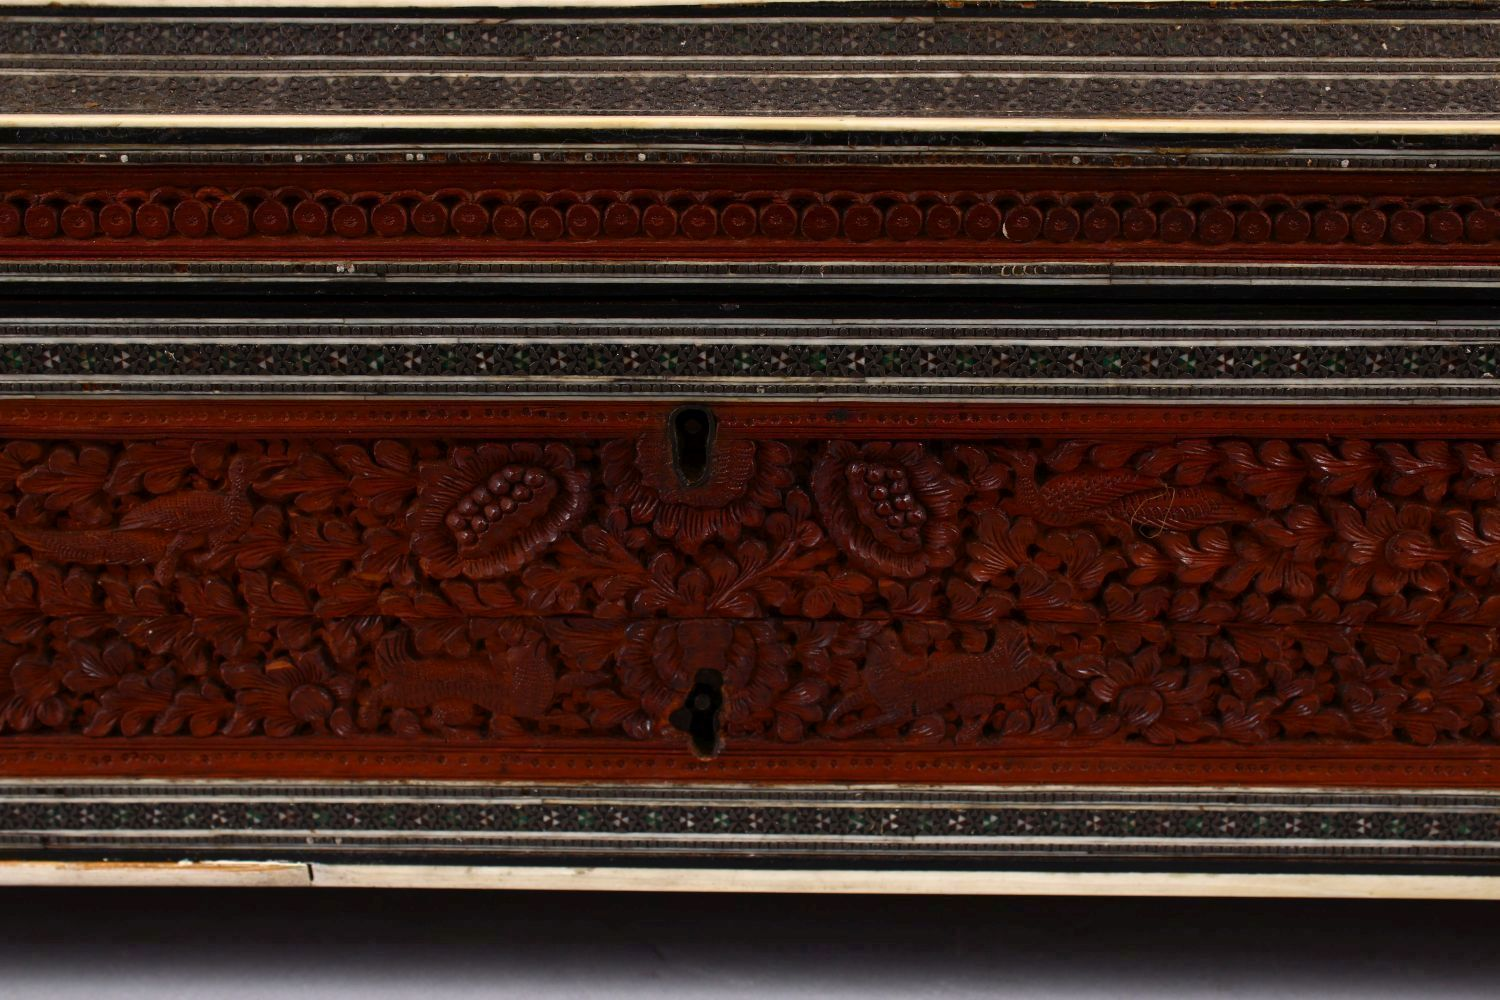 A 19TH CENTURY ANGLO INDIAN INLAID LIDDED SEWING BOX, with carved wood depicting figures and animals - Image 9 of 10